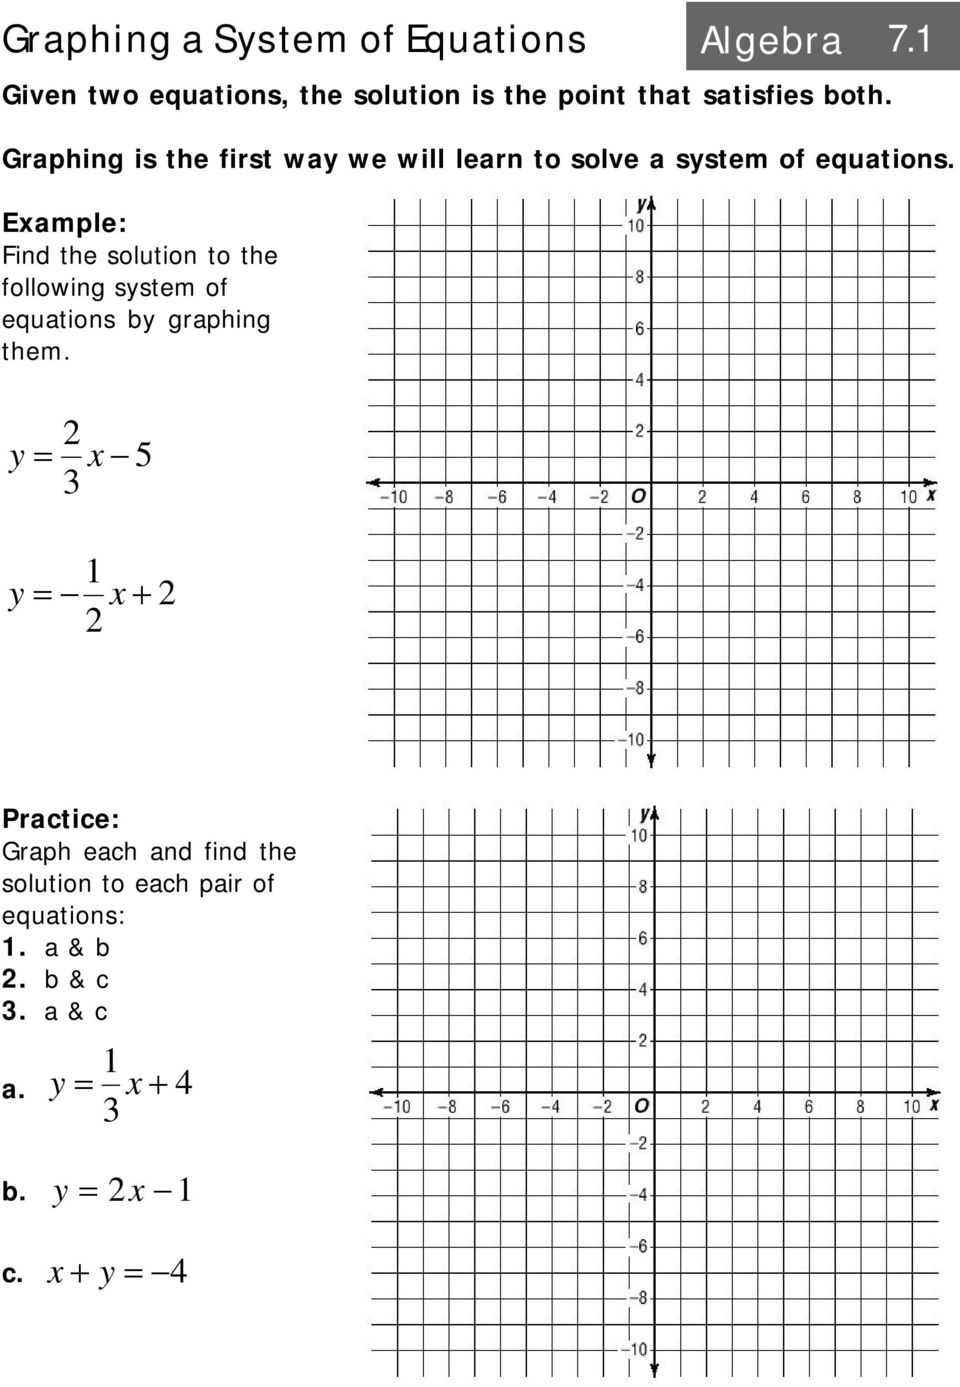 Graphing a System of Equations Algebra PDF